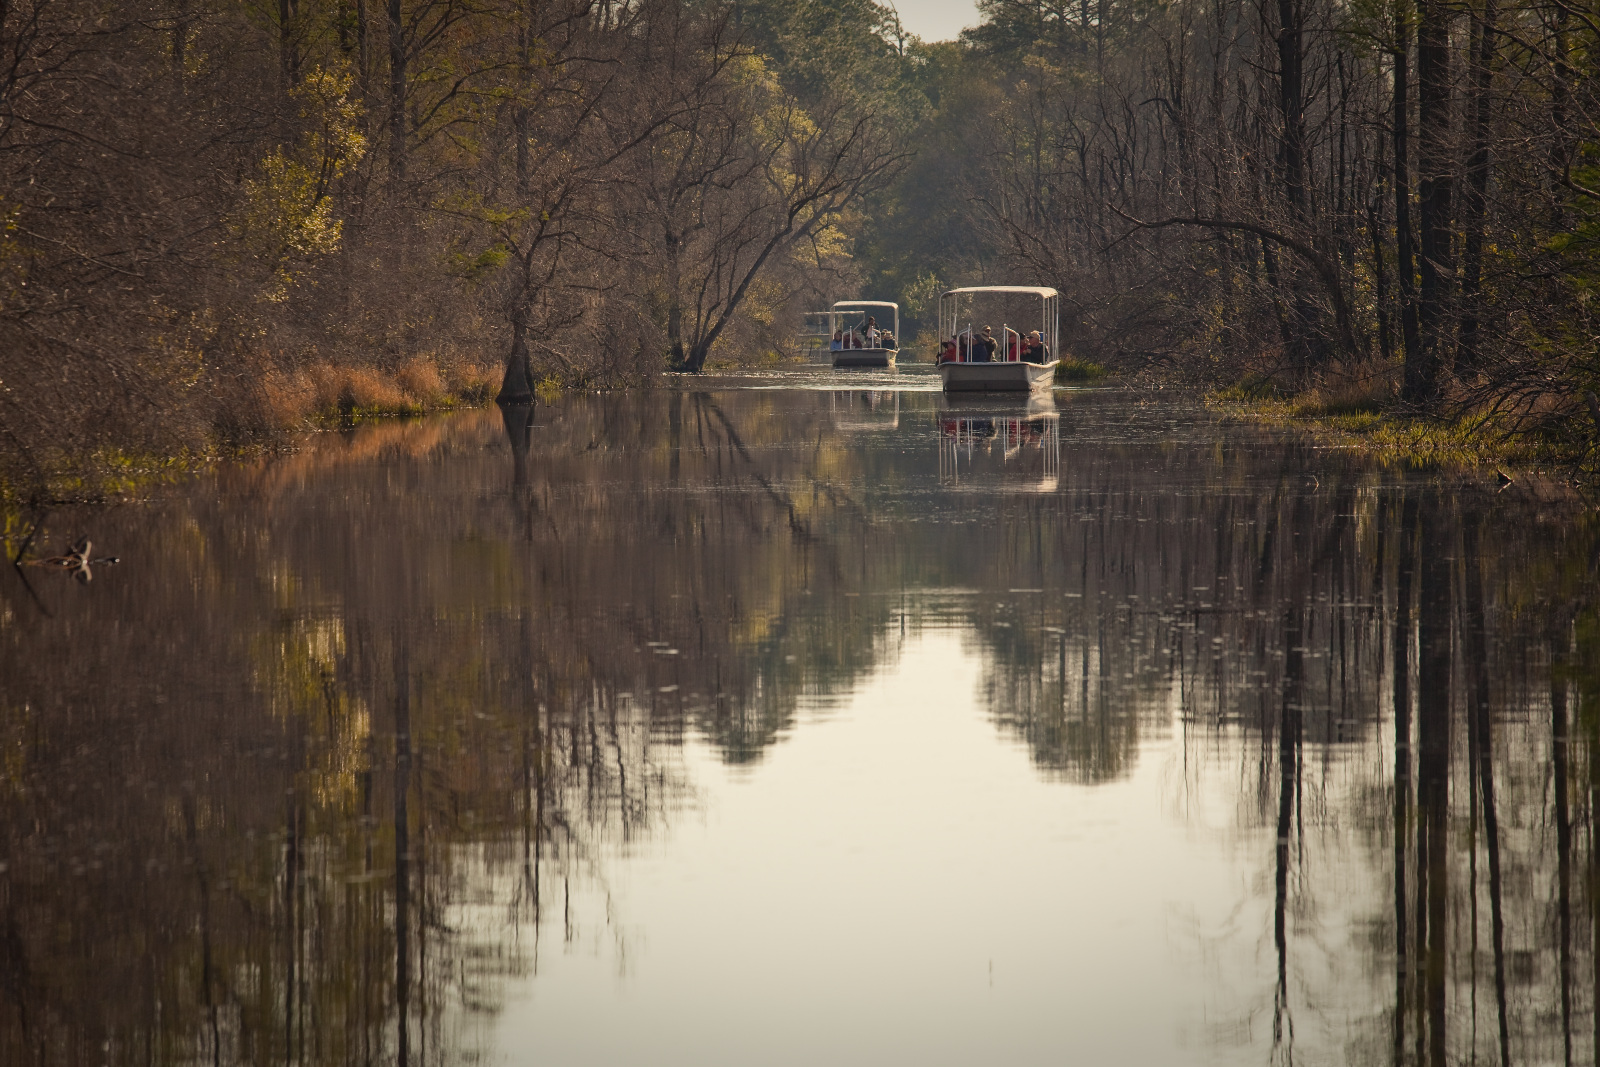 Swamp boats in the Okefenokee